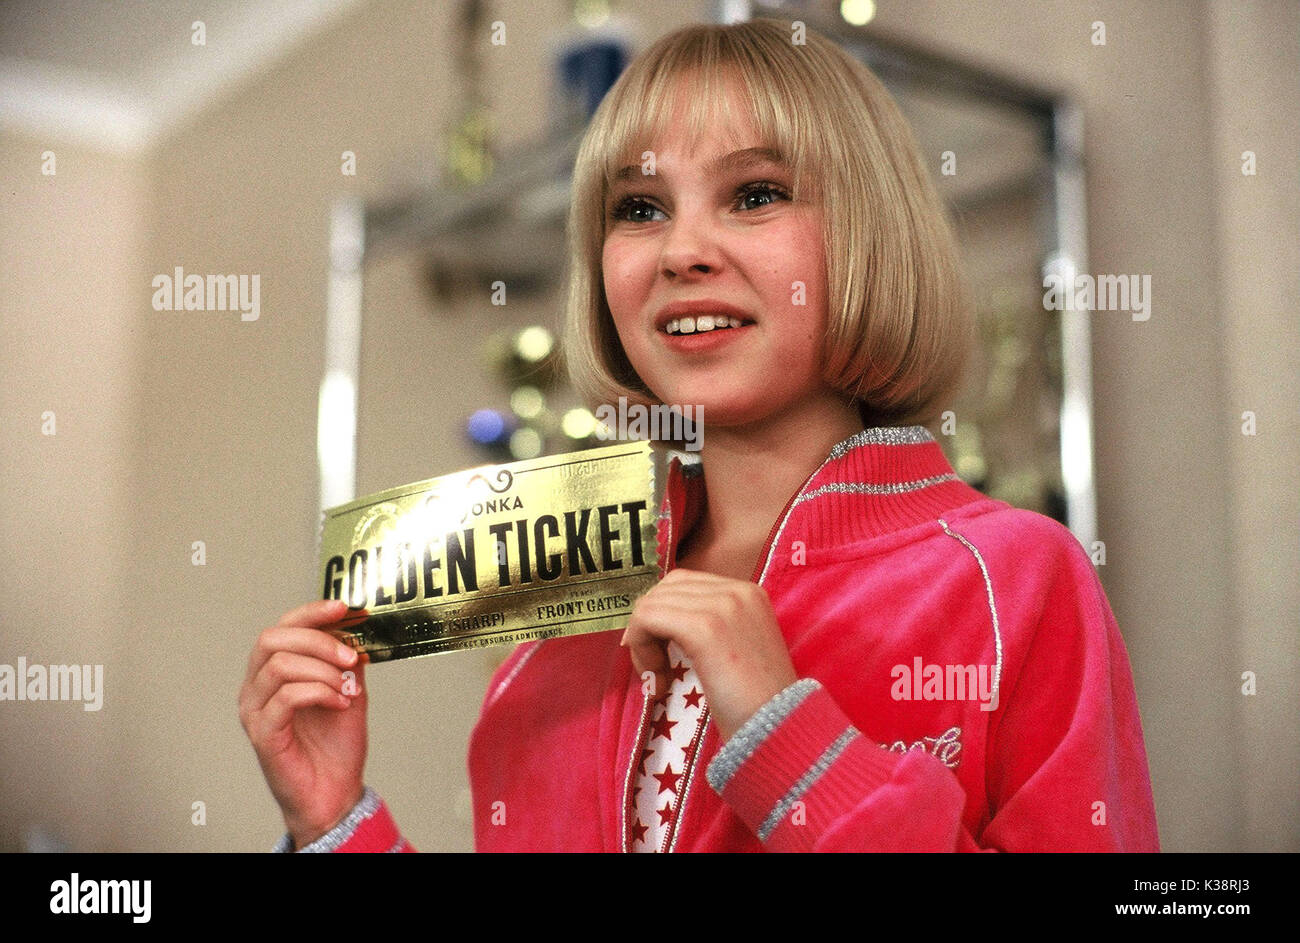 CHARLIE AND THE CHOCOLATE FACTORY ANNASOPHIA ROBB as Violet PHOTOGRAPHS TO BE USED SOLELY FOR ADVERTISING, PROMOTION, Stock Photo